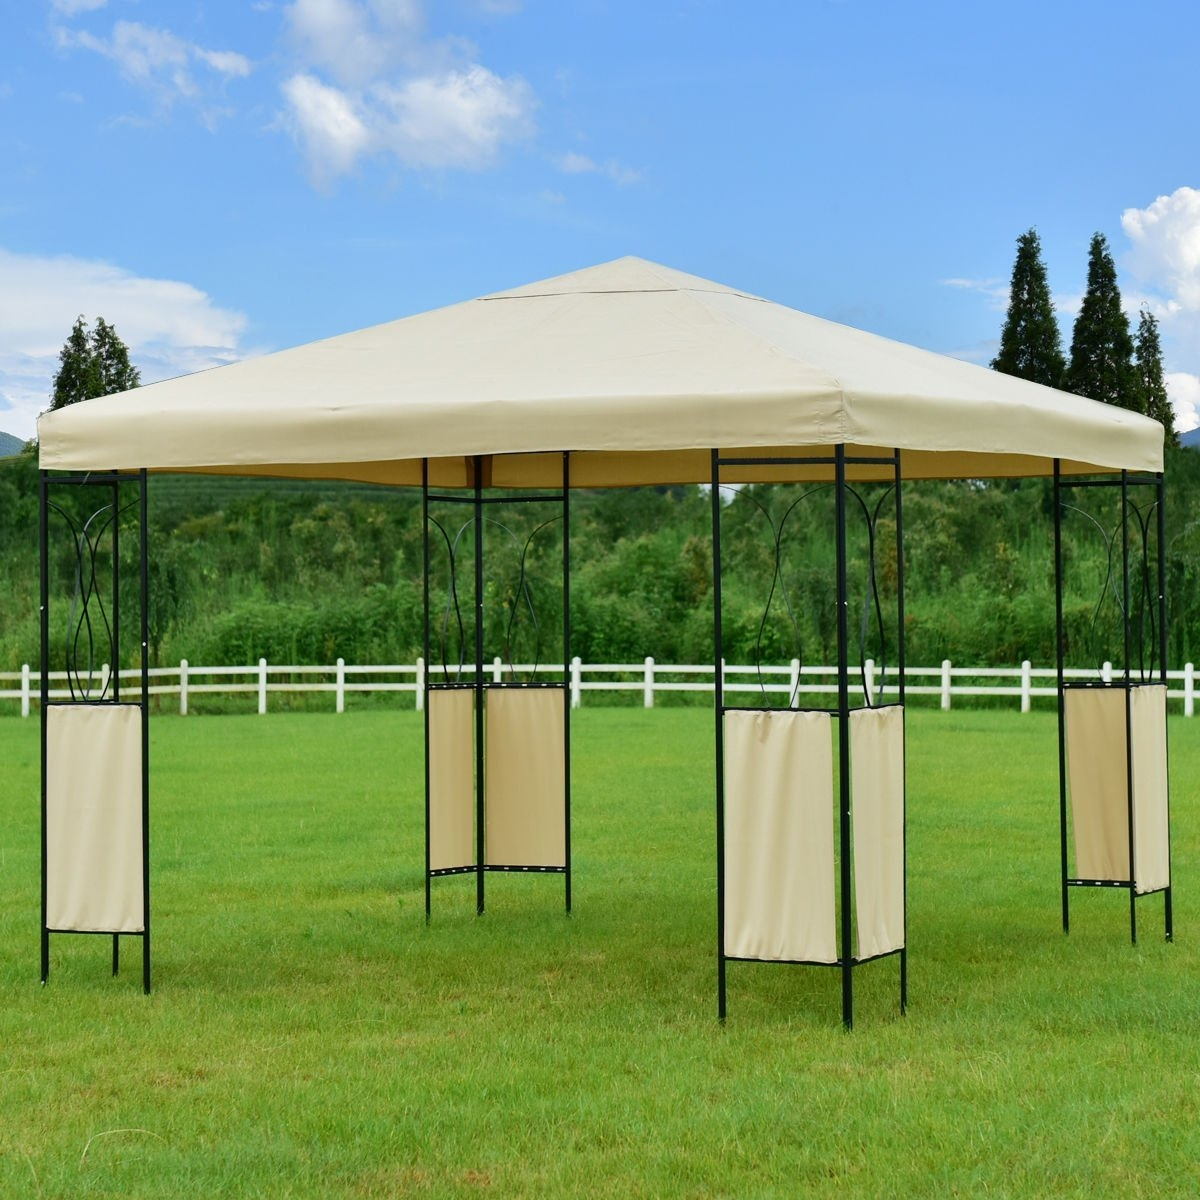 New MTN-G MTN-G 10x10 Gazebo Canopy Shelter Patio Wedding Party Tent Outdoor Awning Beige by MTN Gearsmith